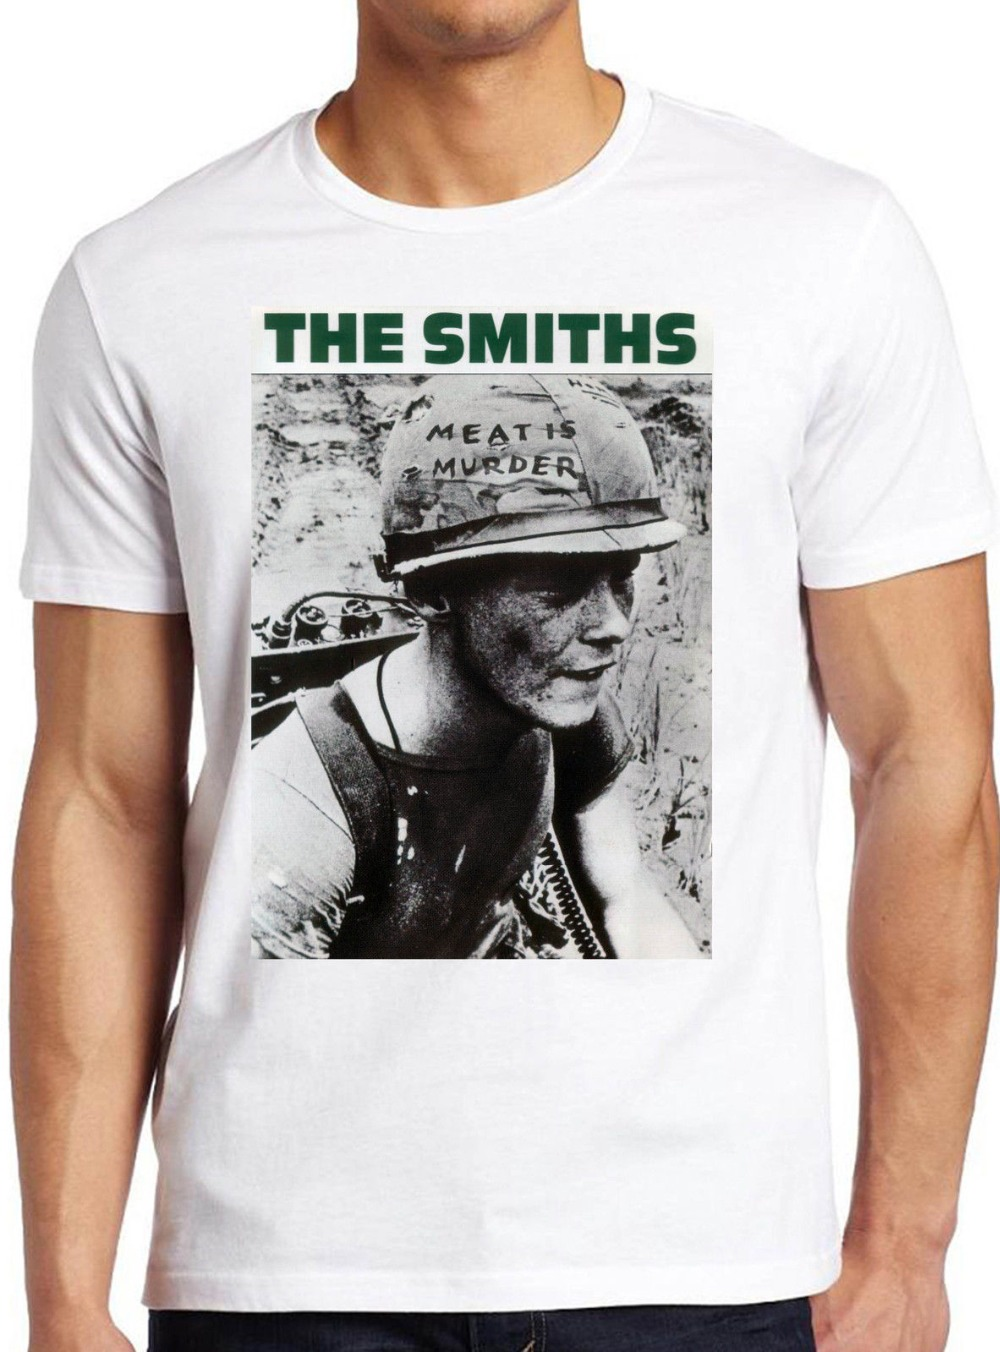 f08785c9 20+ The Smiths Meat Is Murder T Shirt Pictures and Ideas on STEM ...